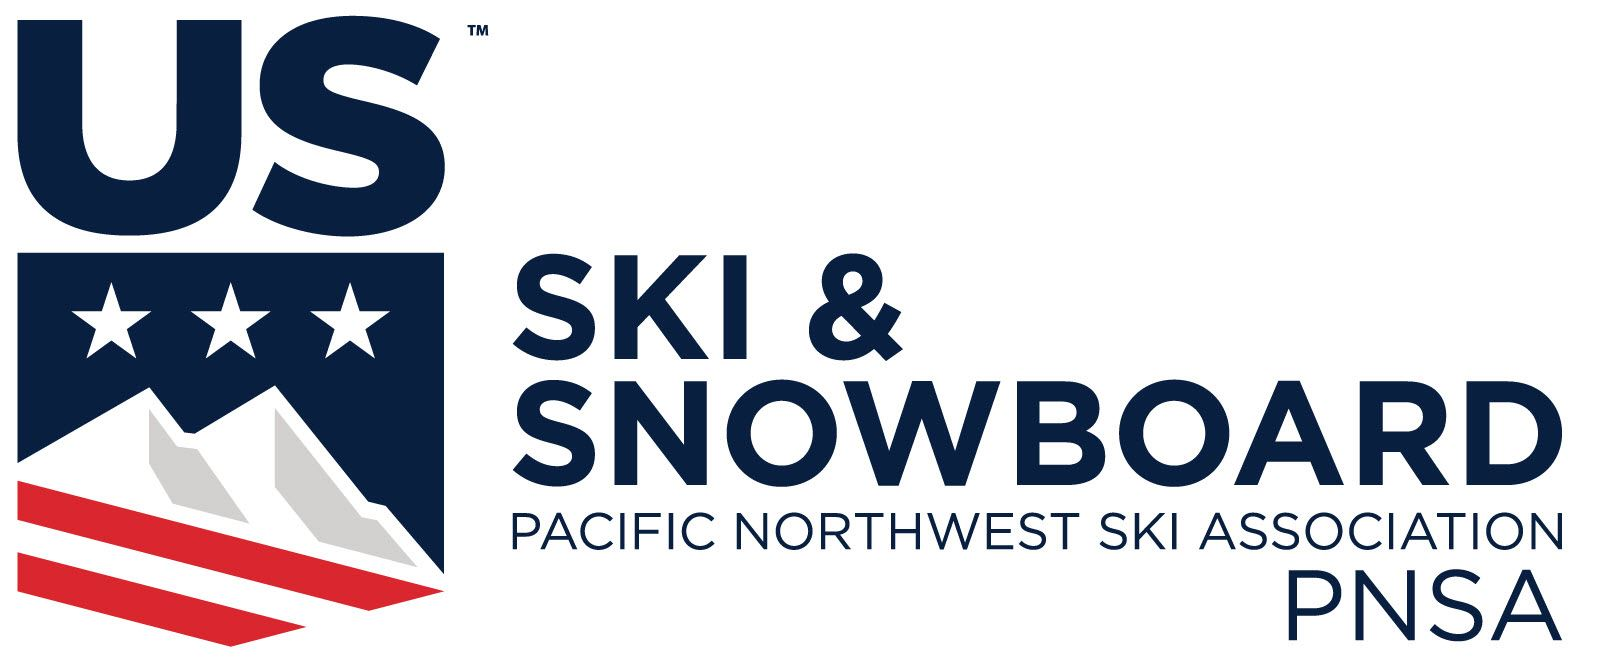 Pacific Northwest Ski Association (PNSA)